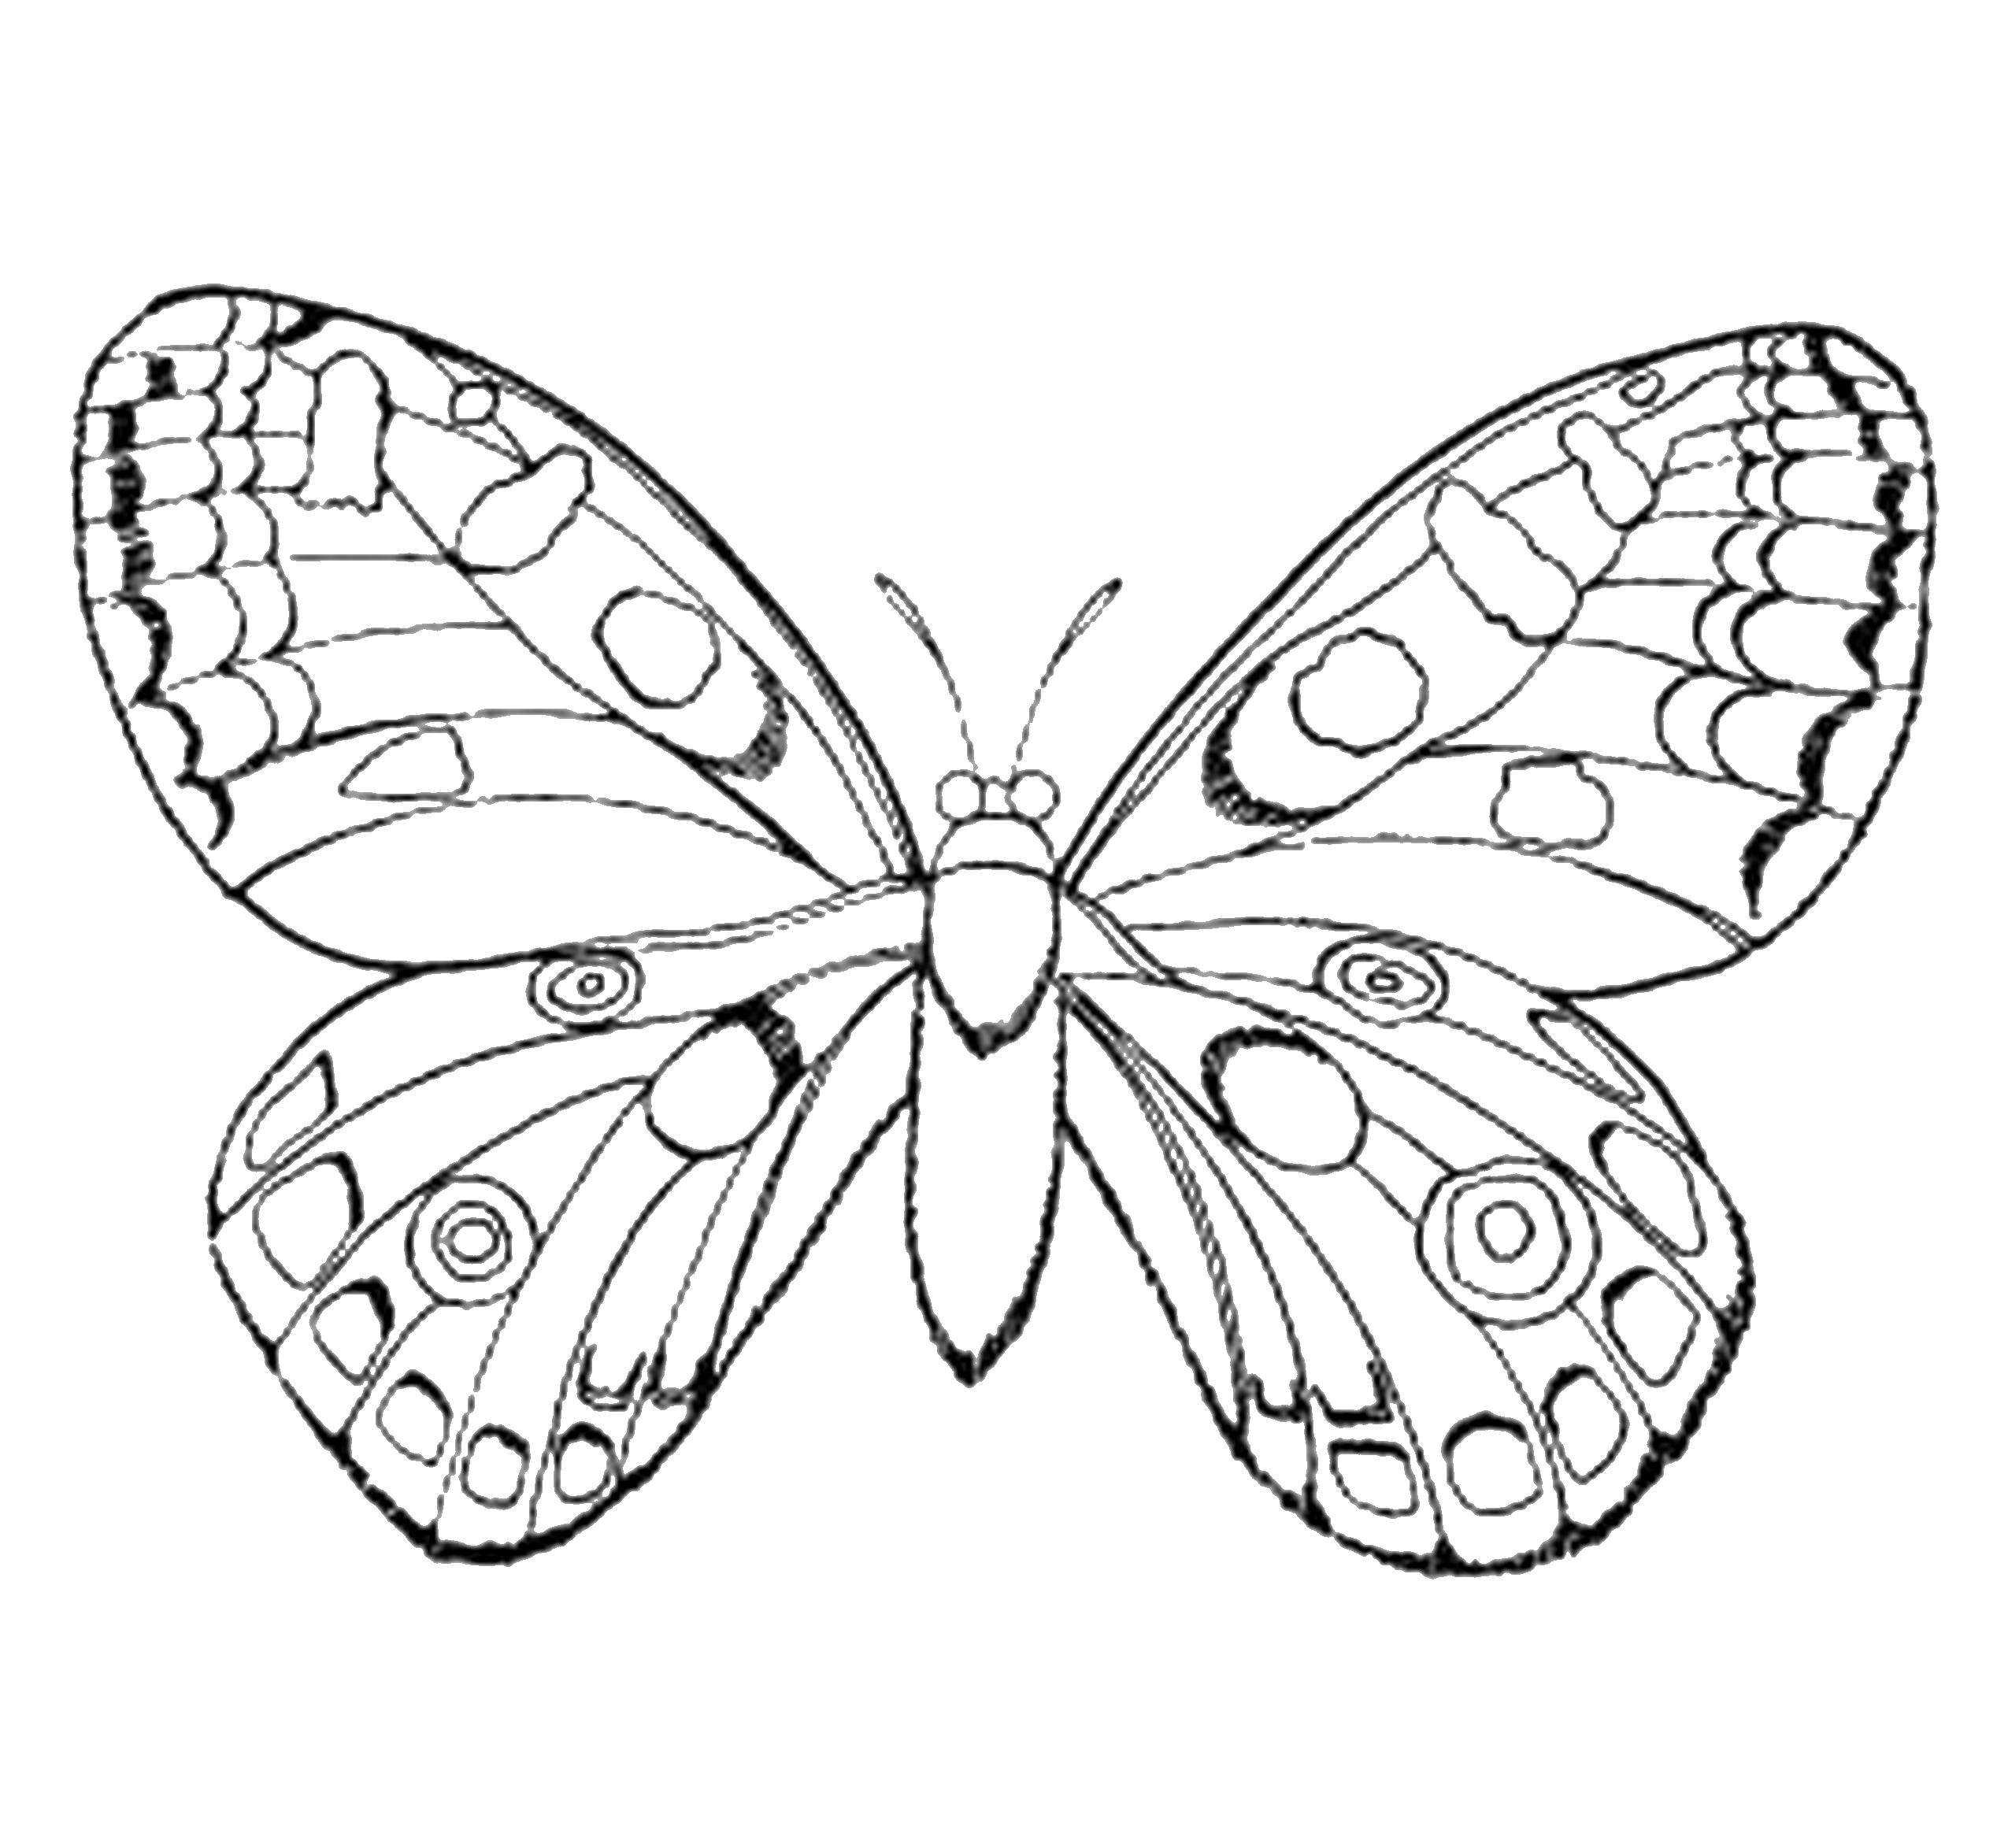 Coloring sheet butterfly Download technique, robot.  Print ,Technique,